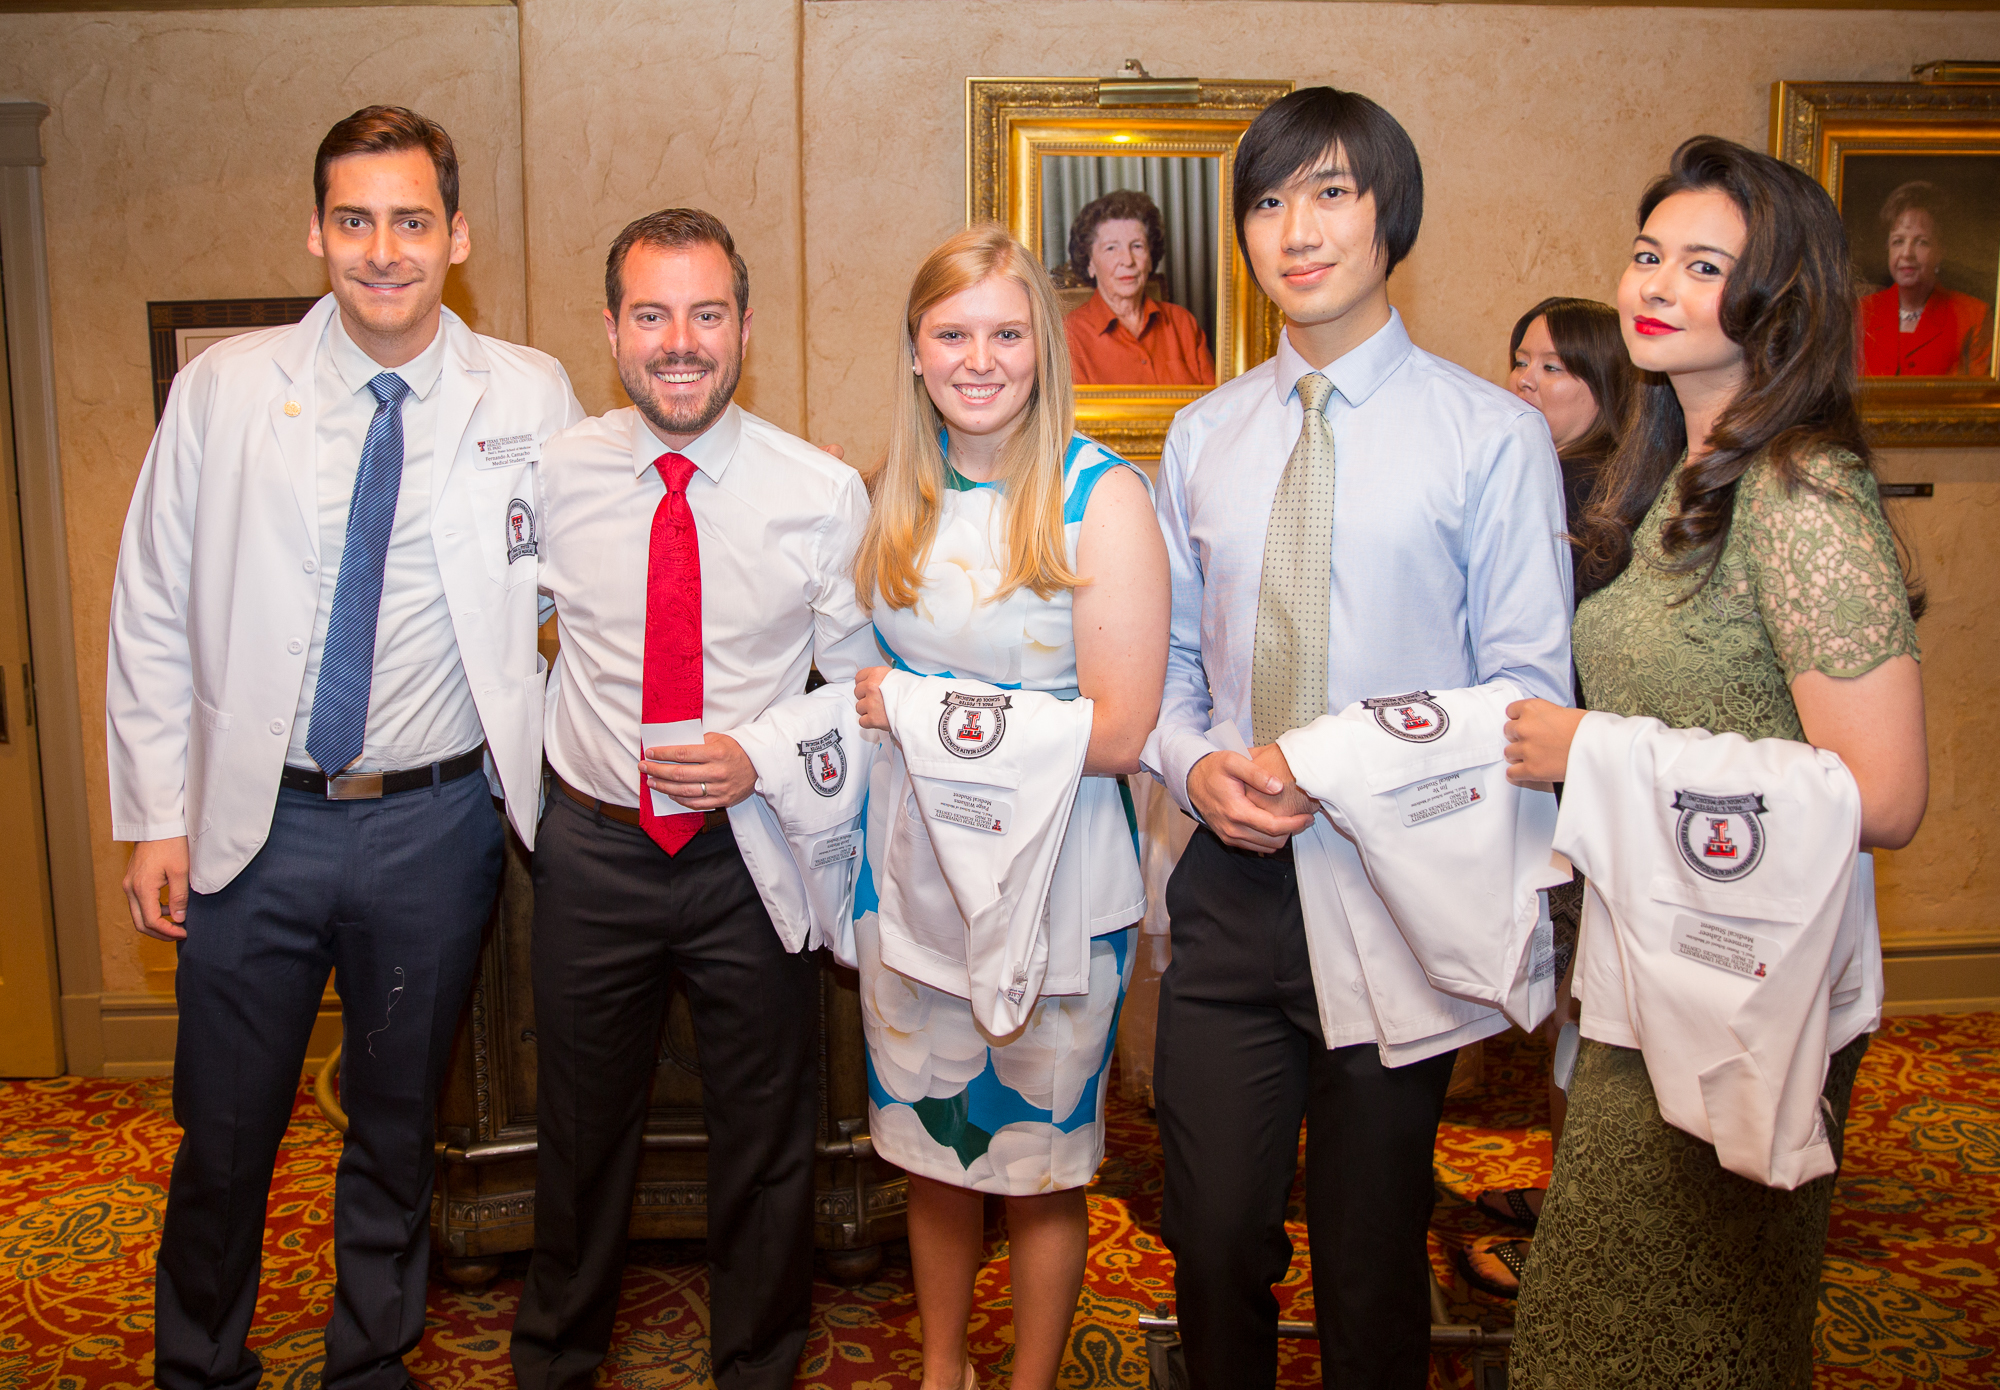 Paul L. Foster School of Medicine Holds White Coat Ceremony for ...